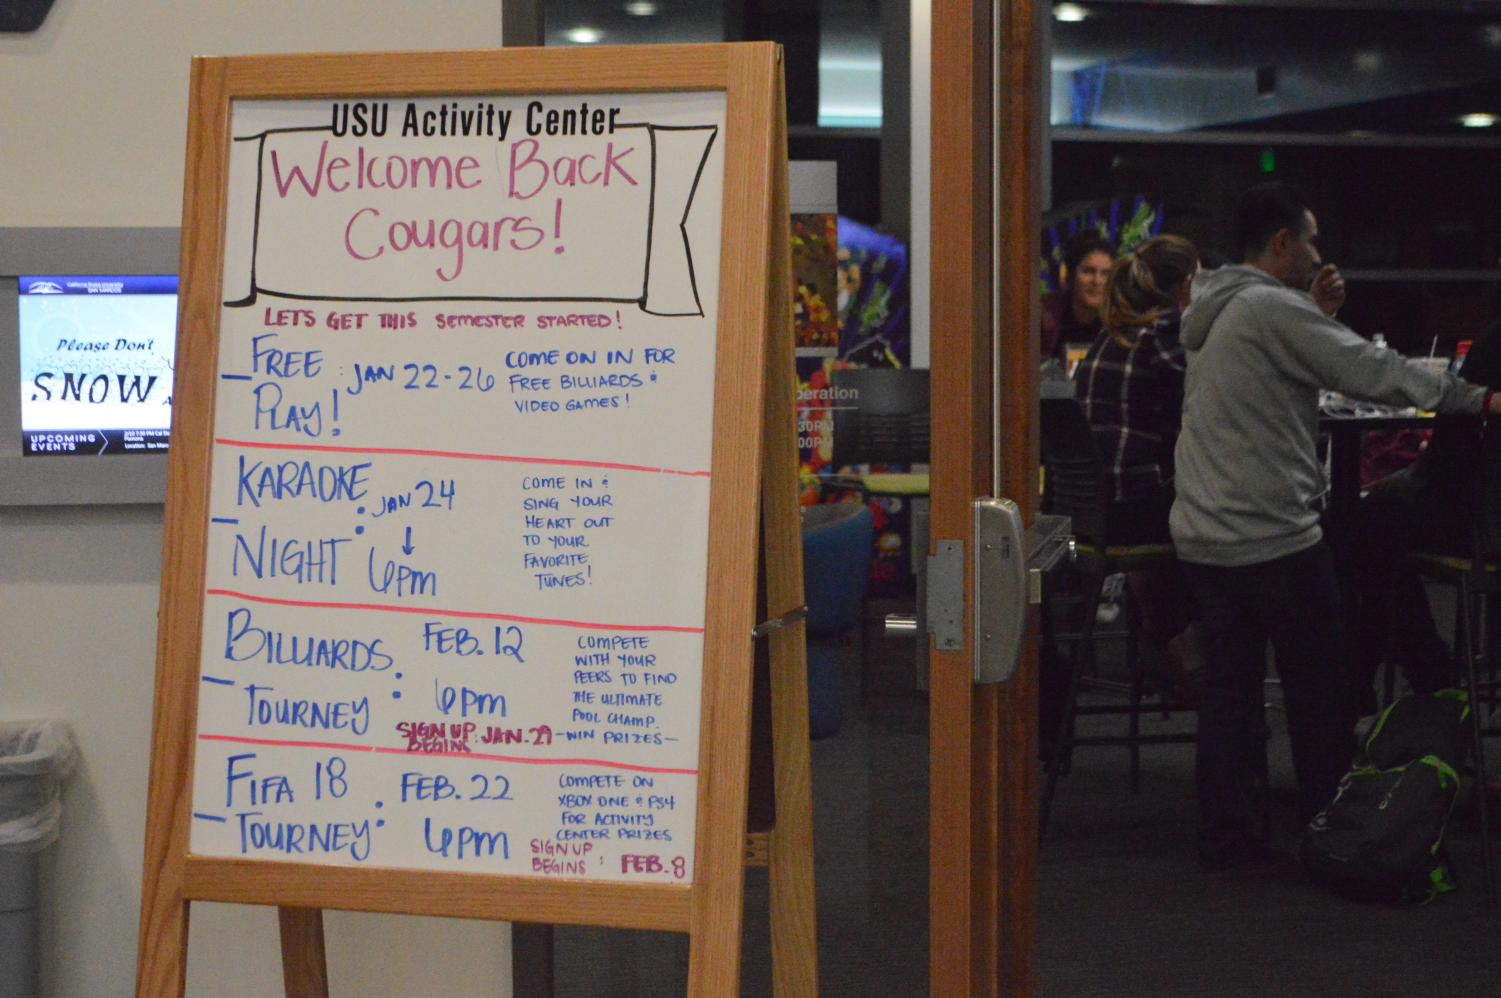 Behind the doors of the USU Activity Center, students participate in a Wednesday Karaoke night, one of the many Welcome-back events held in this room.